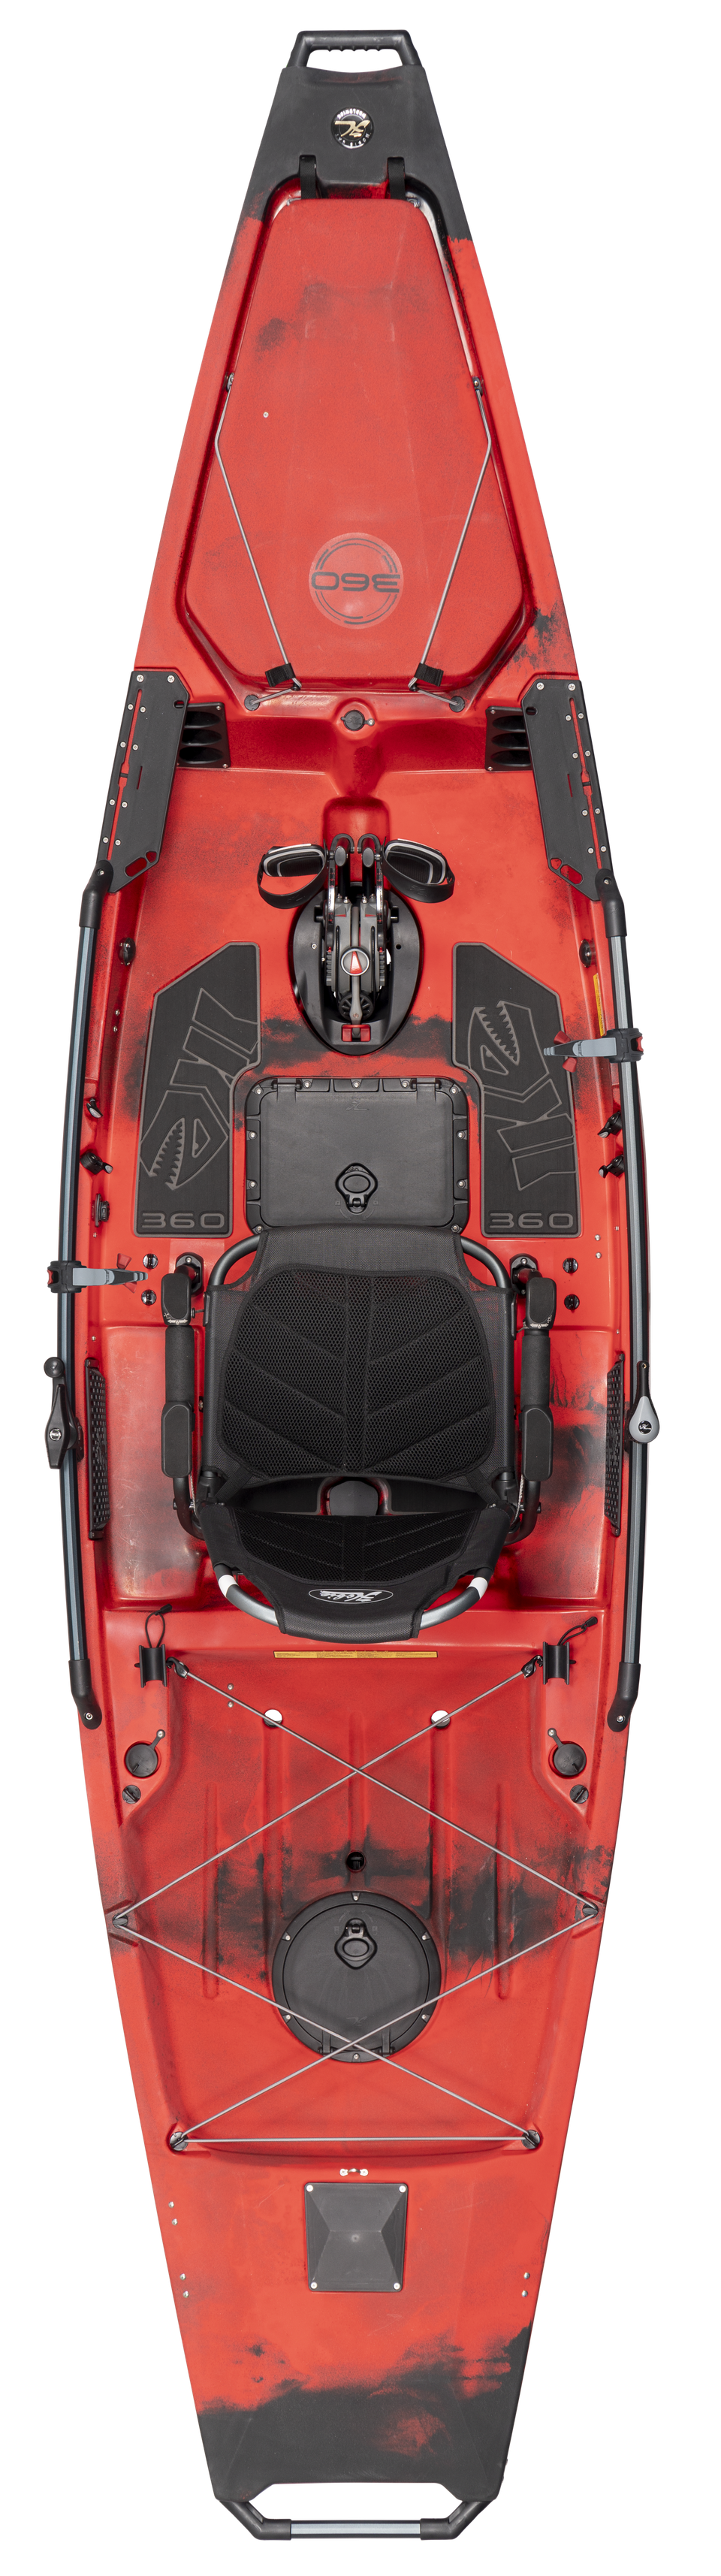 Mirage Pro Angler 14 360 Mike Iaconelli Edition Product Image